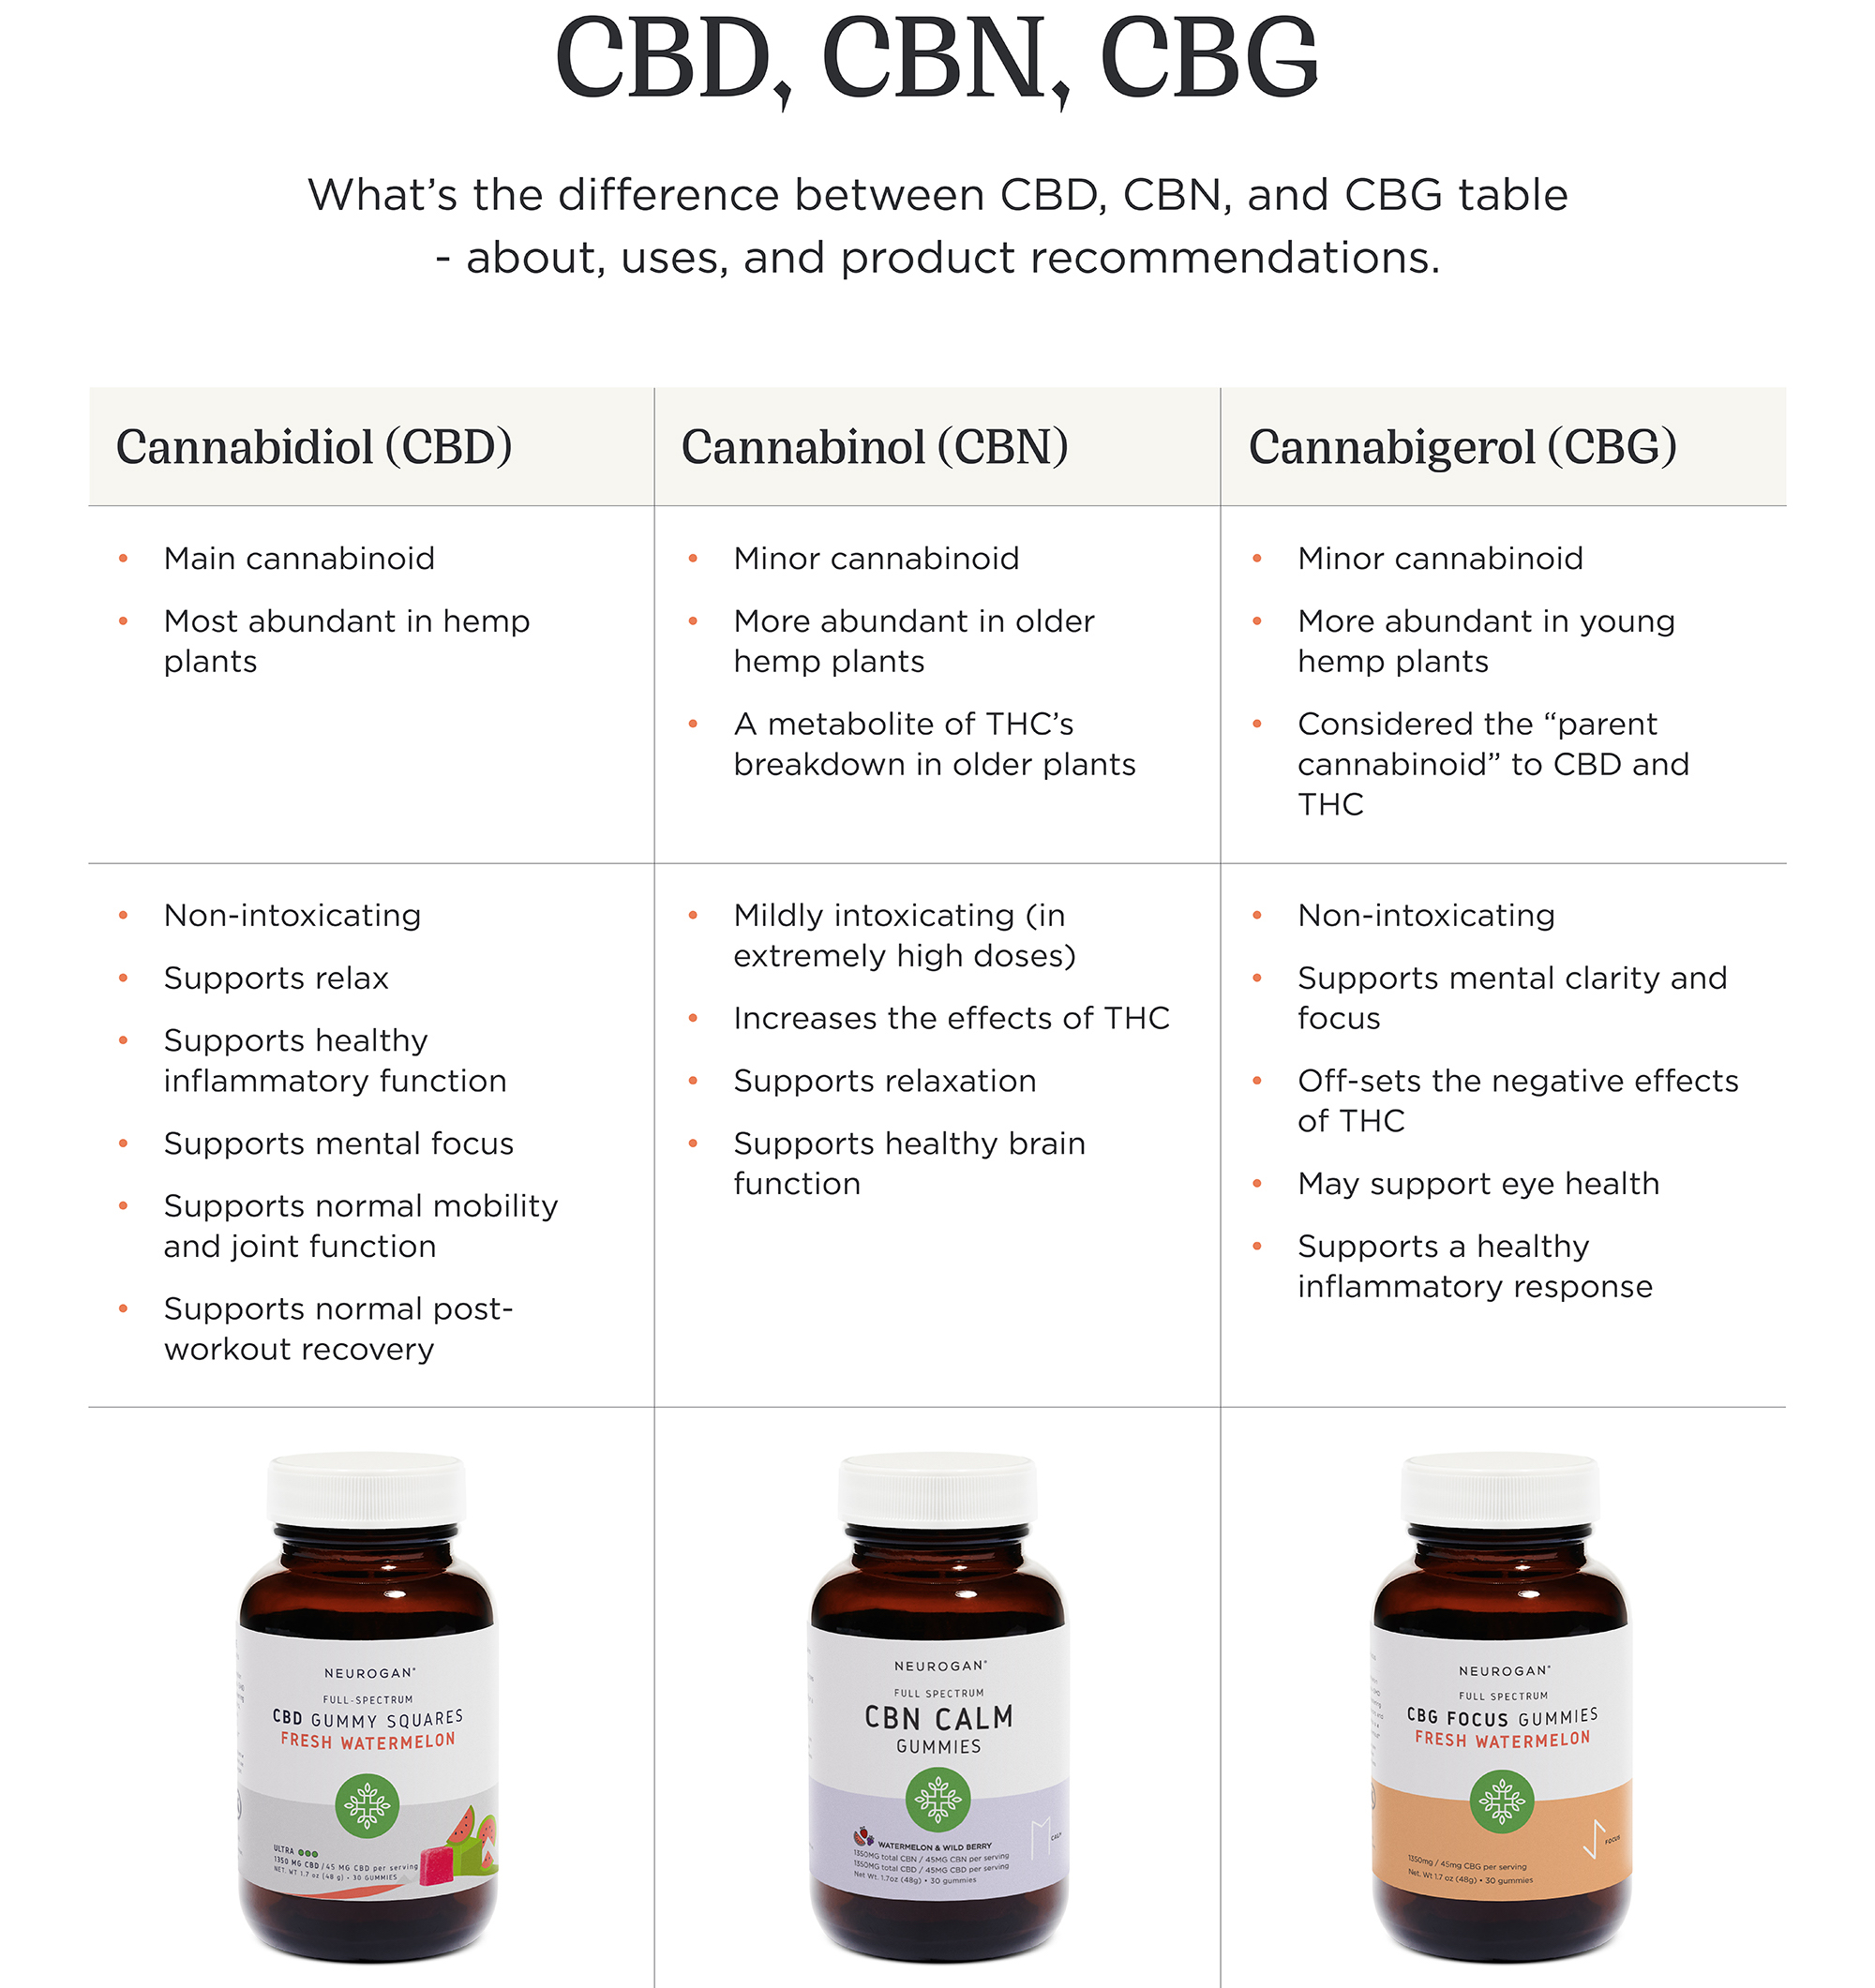 What Are The Differences Between The Cannabinoids?